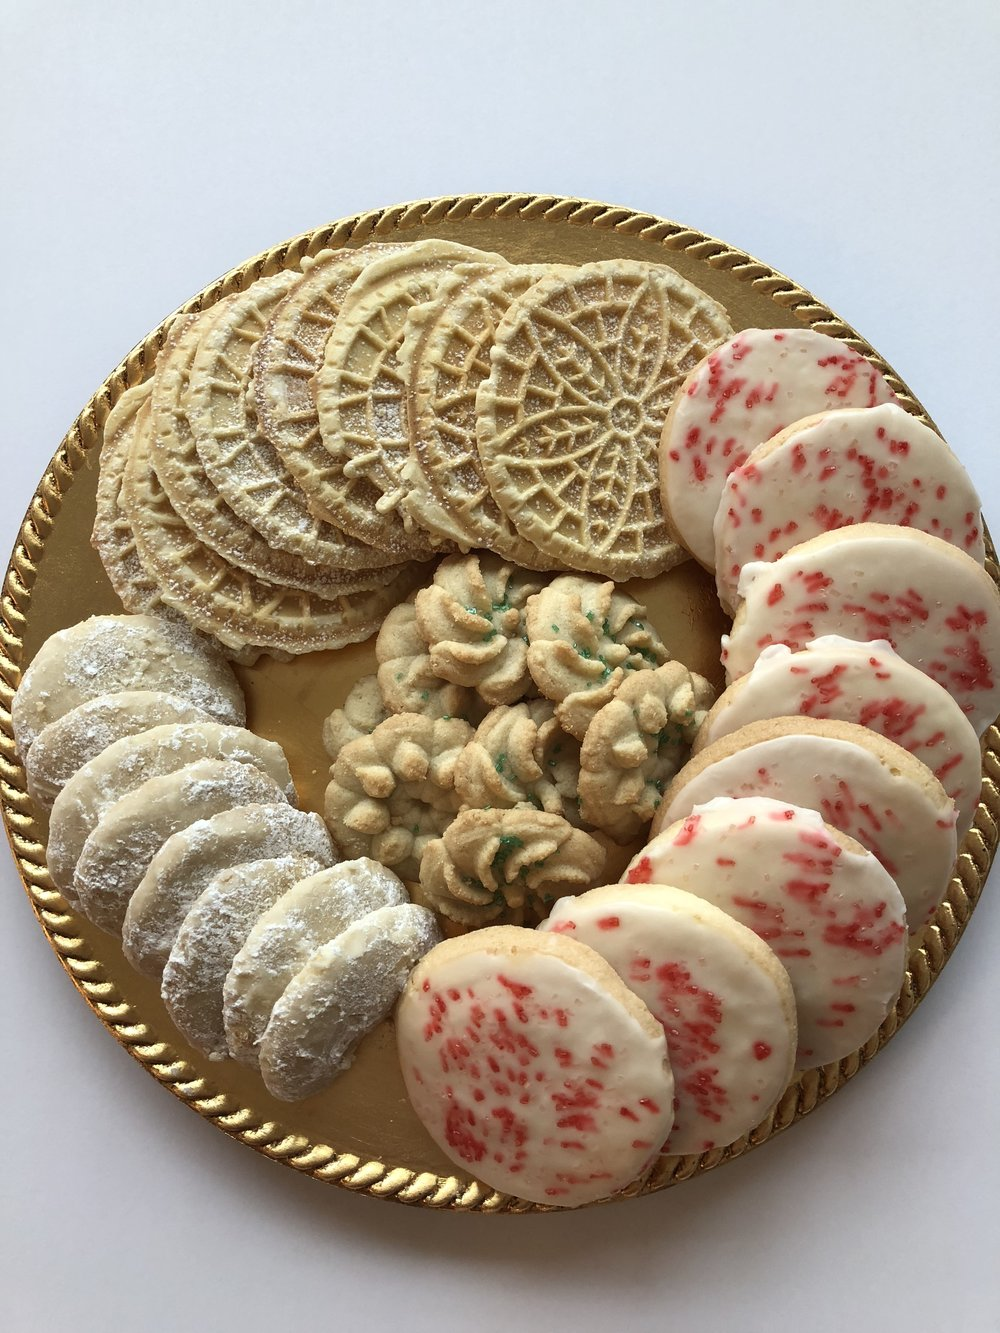 Seasonal Gluten & Dairy Free Assorted Christmas Cookies  $24 (32 cookies)